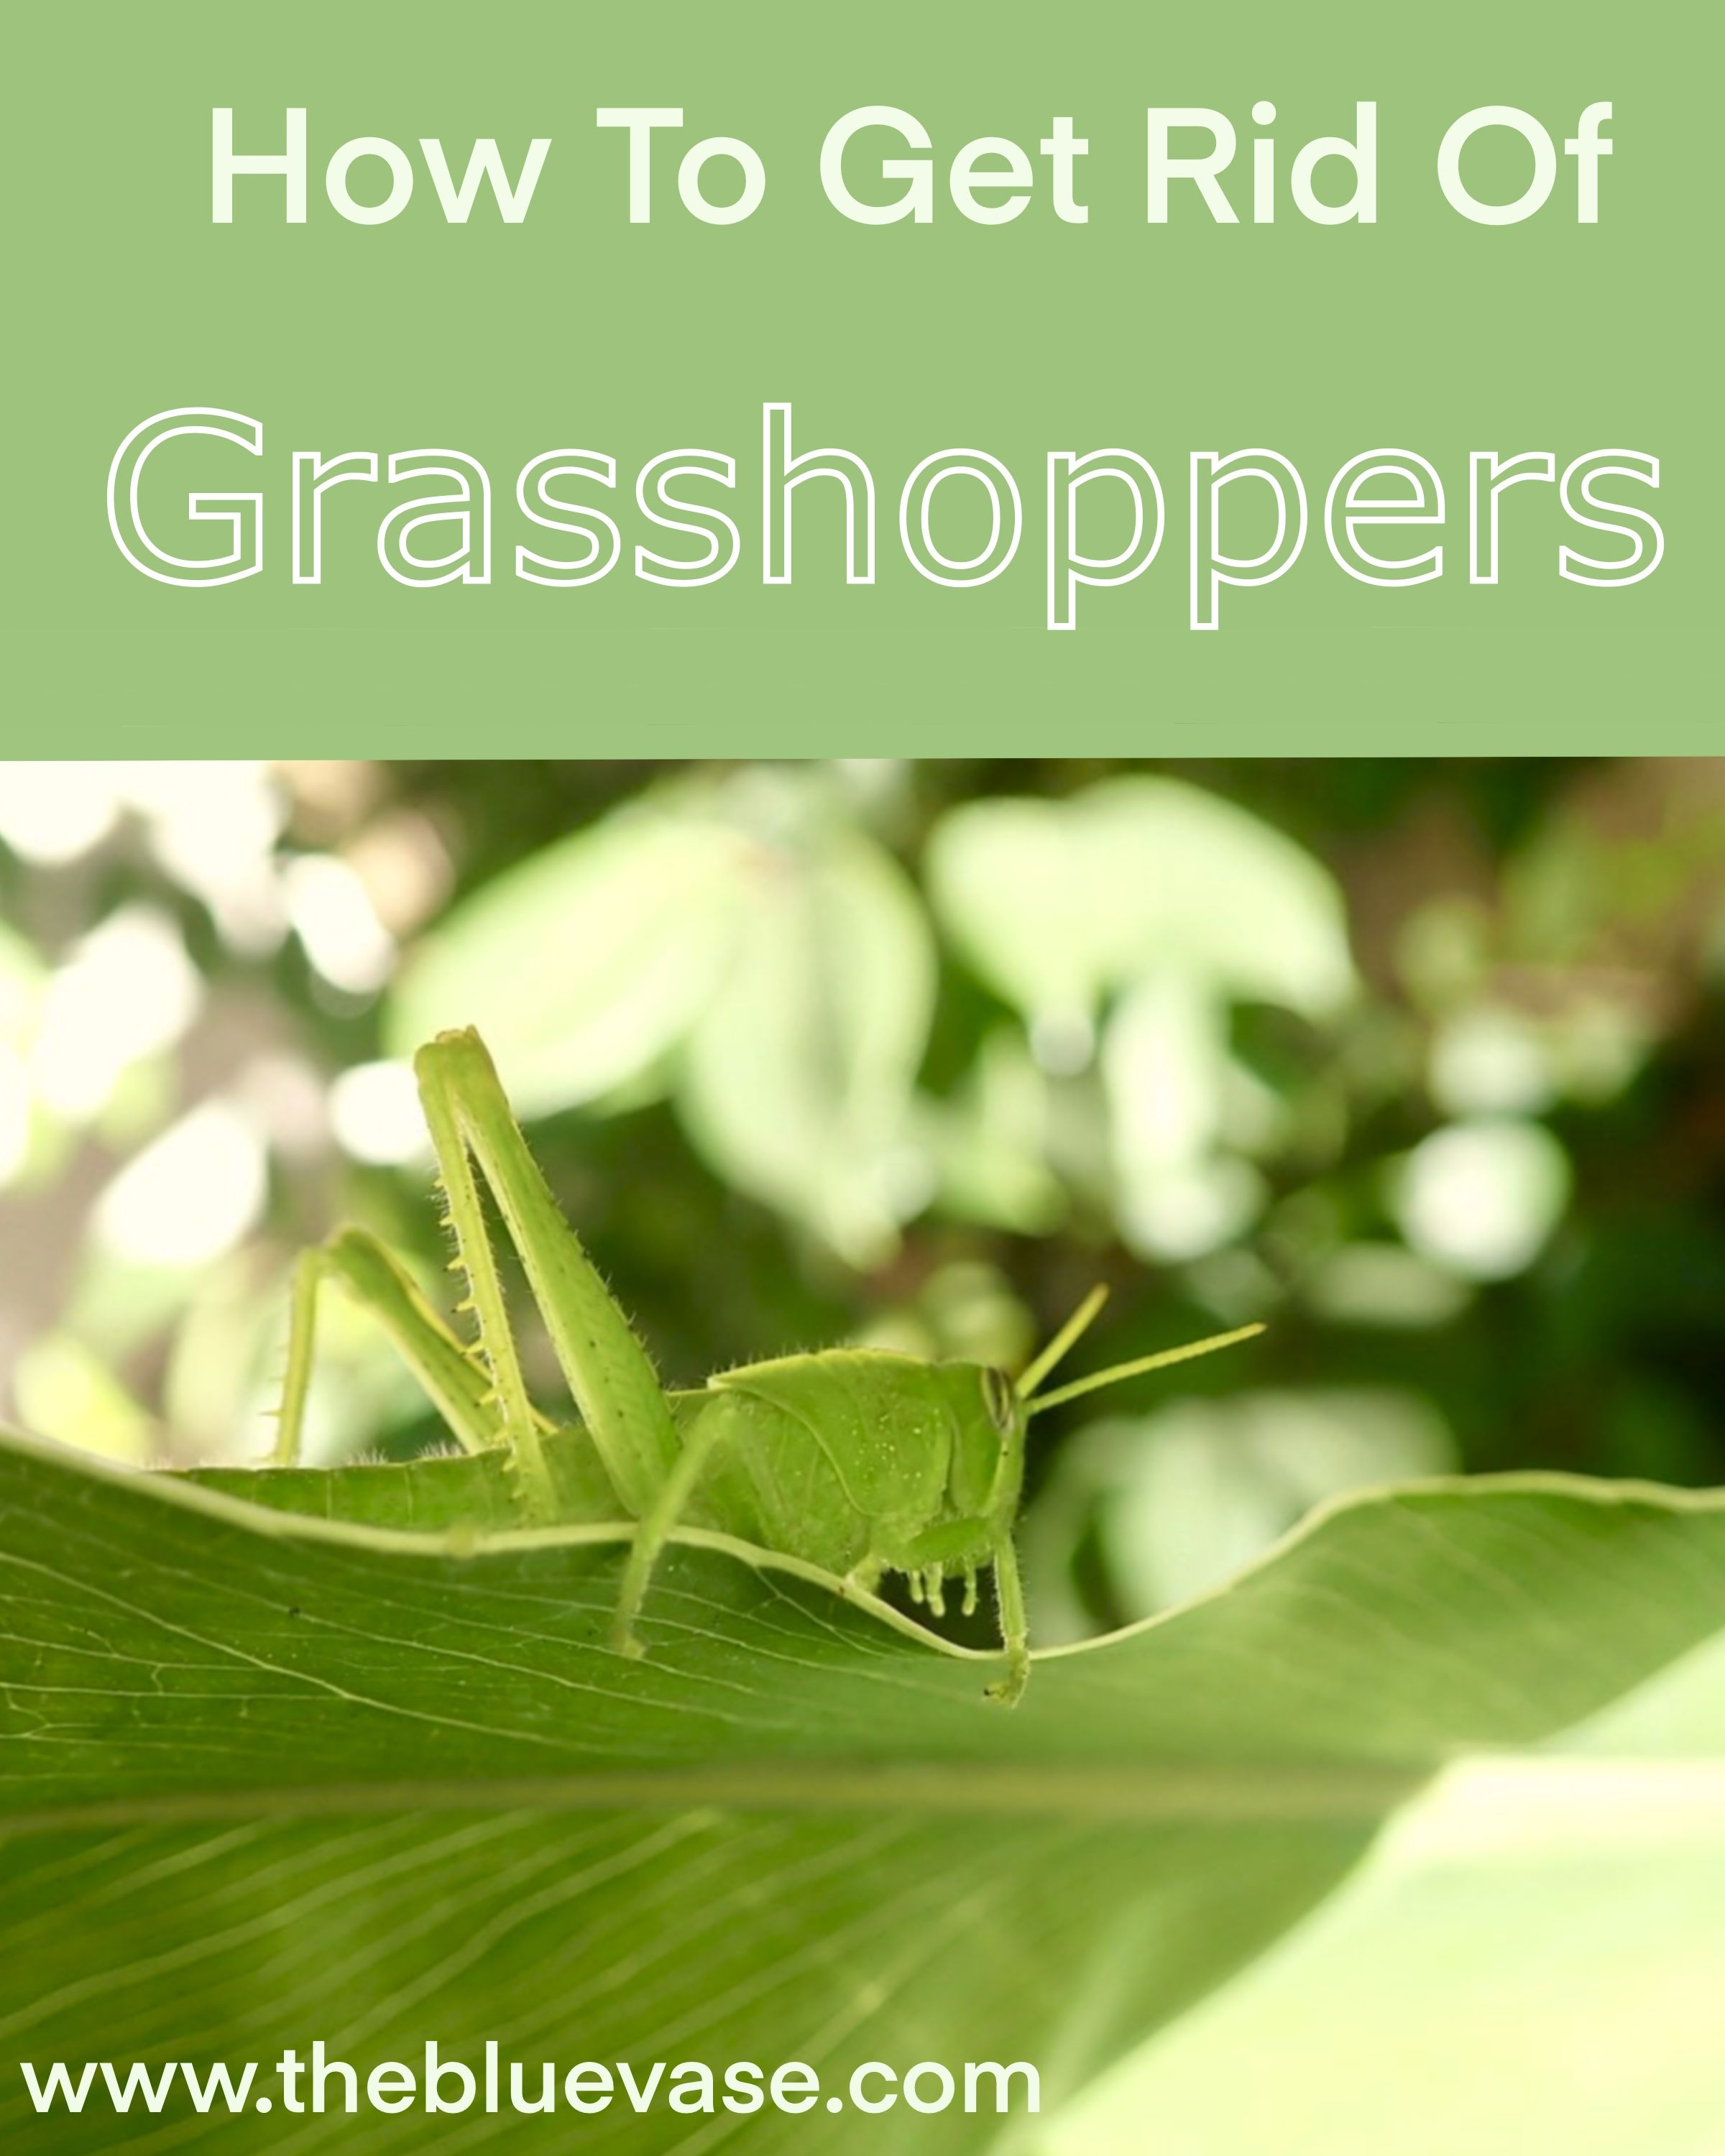 66c193e83694a7fb171a08deefc92bc1 - How To Get Rid Of Grasshoppers On My Plants